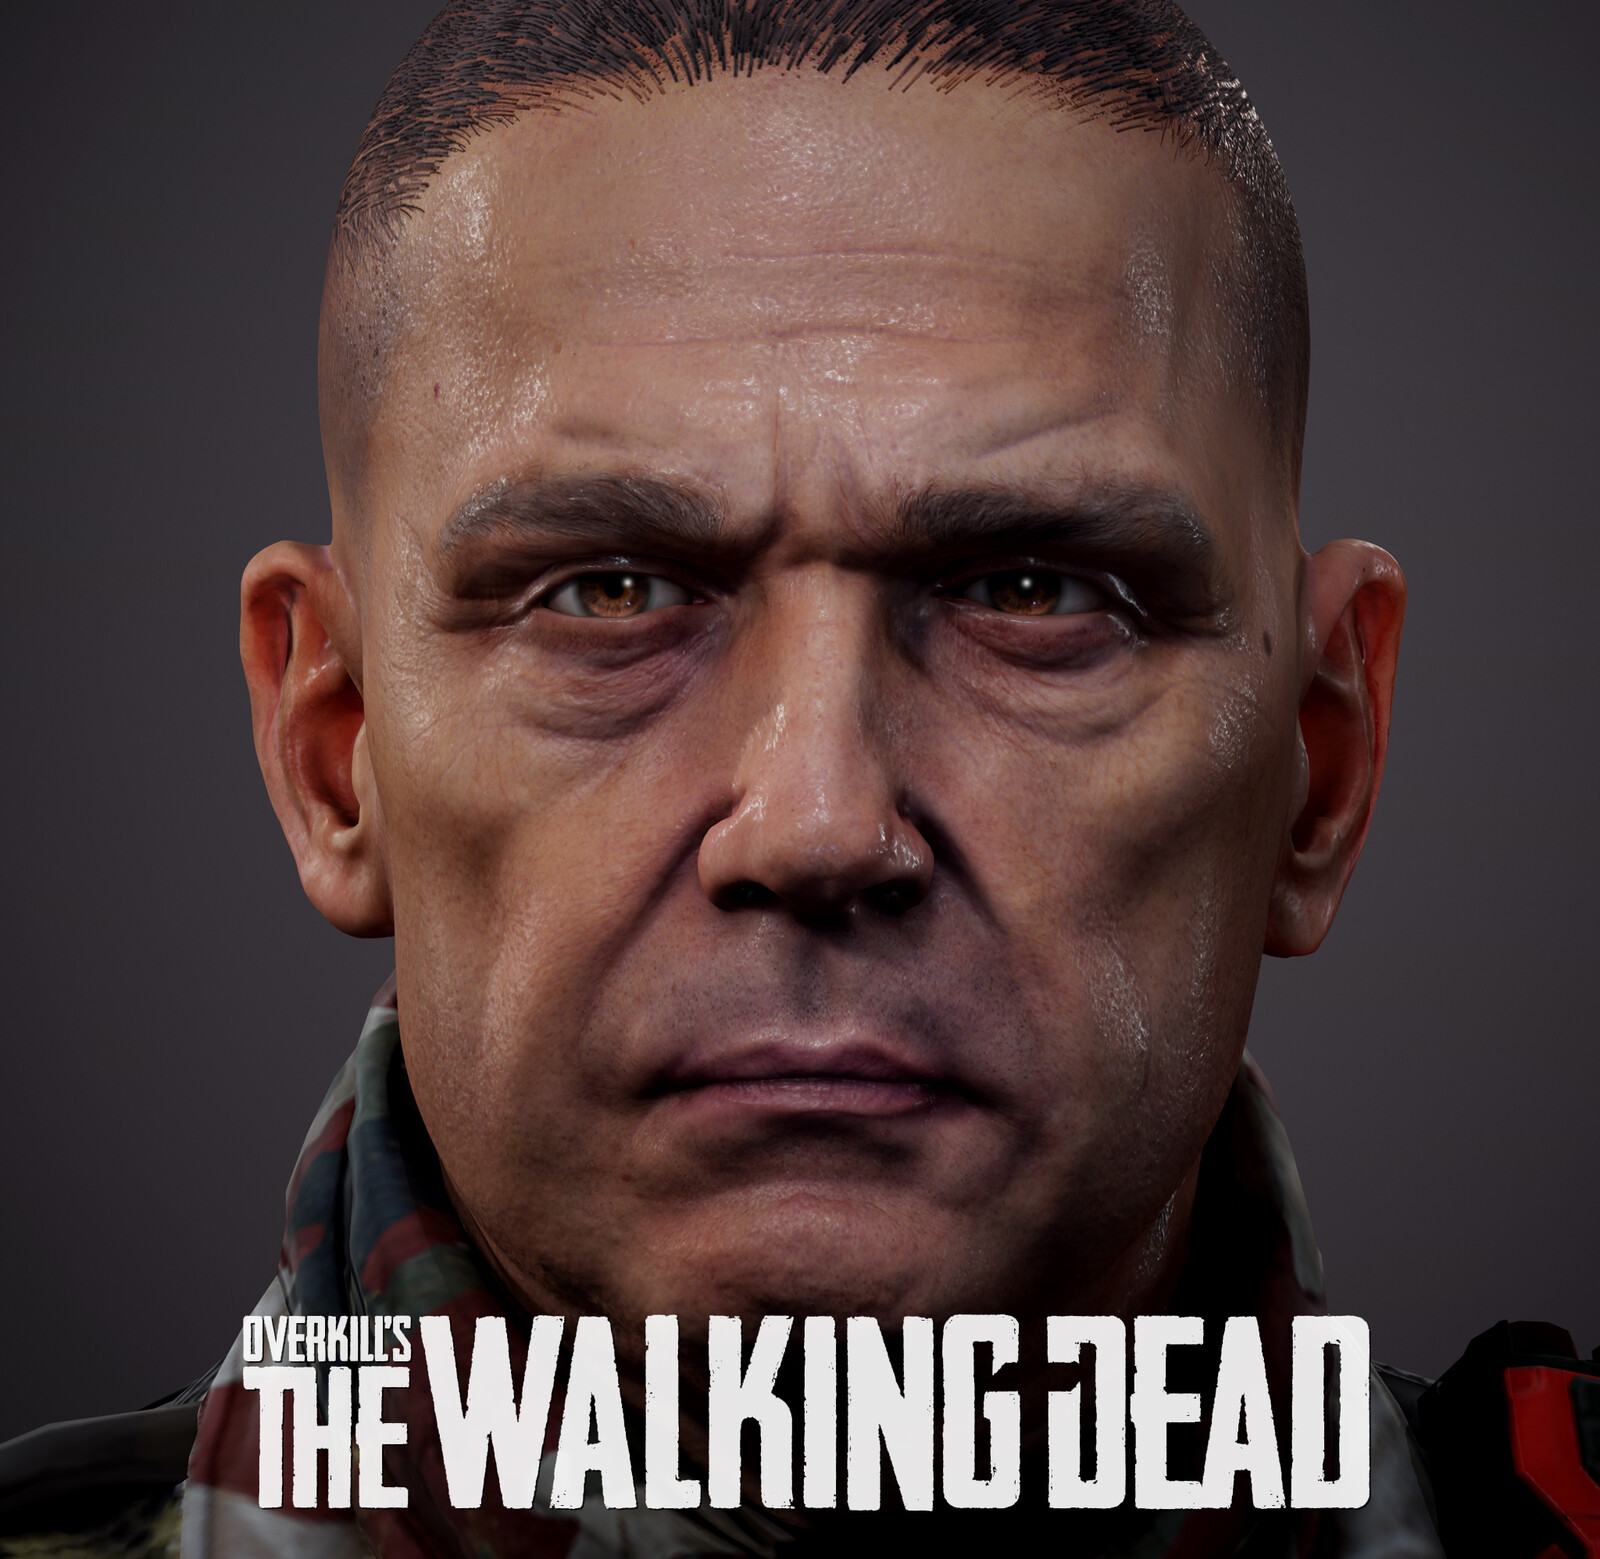 Overkill's The Walking Dead Soldier Head Variation (Season 1)